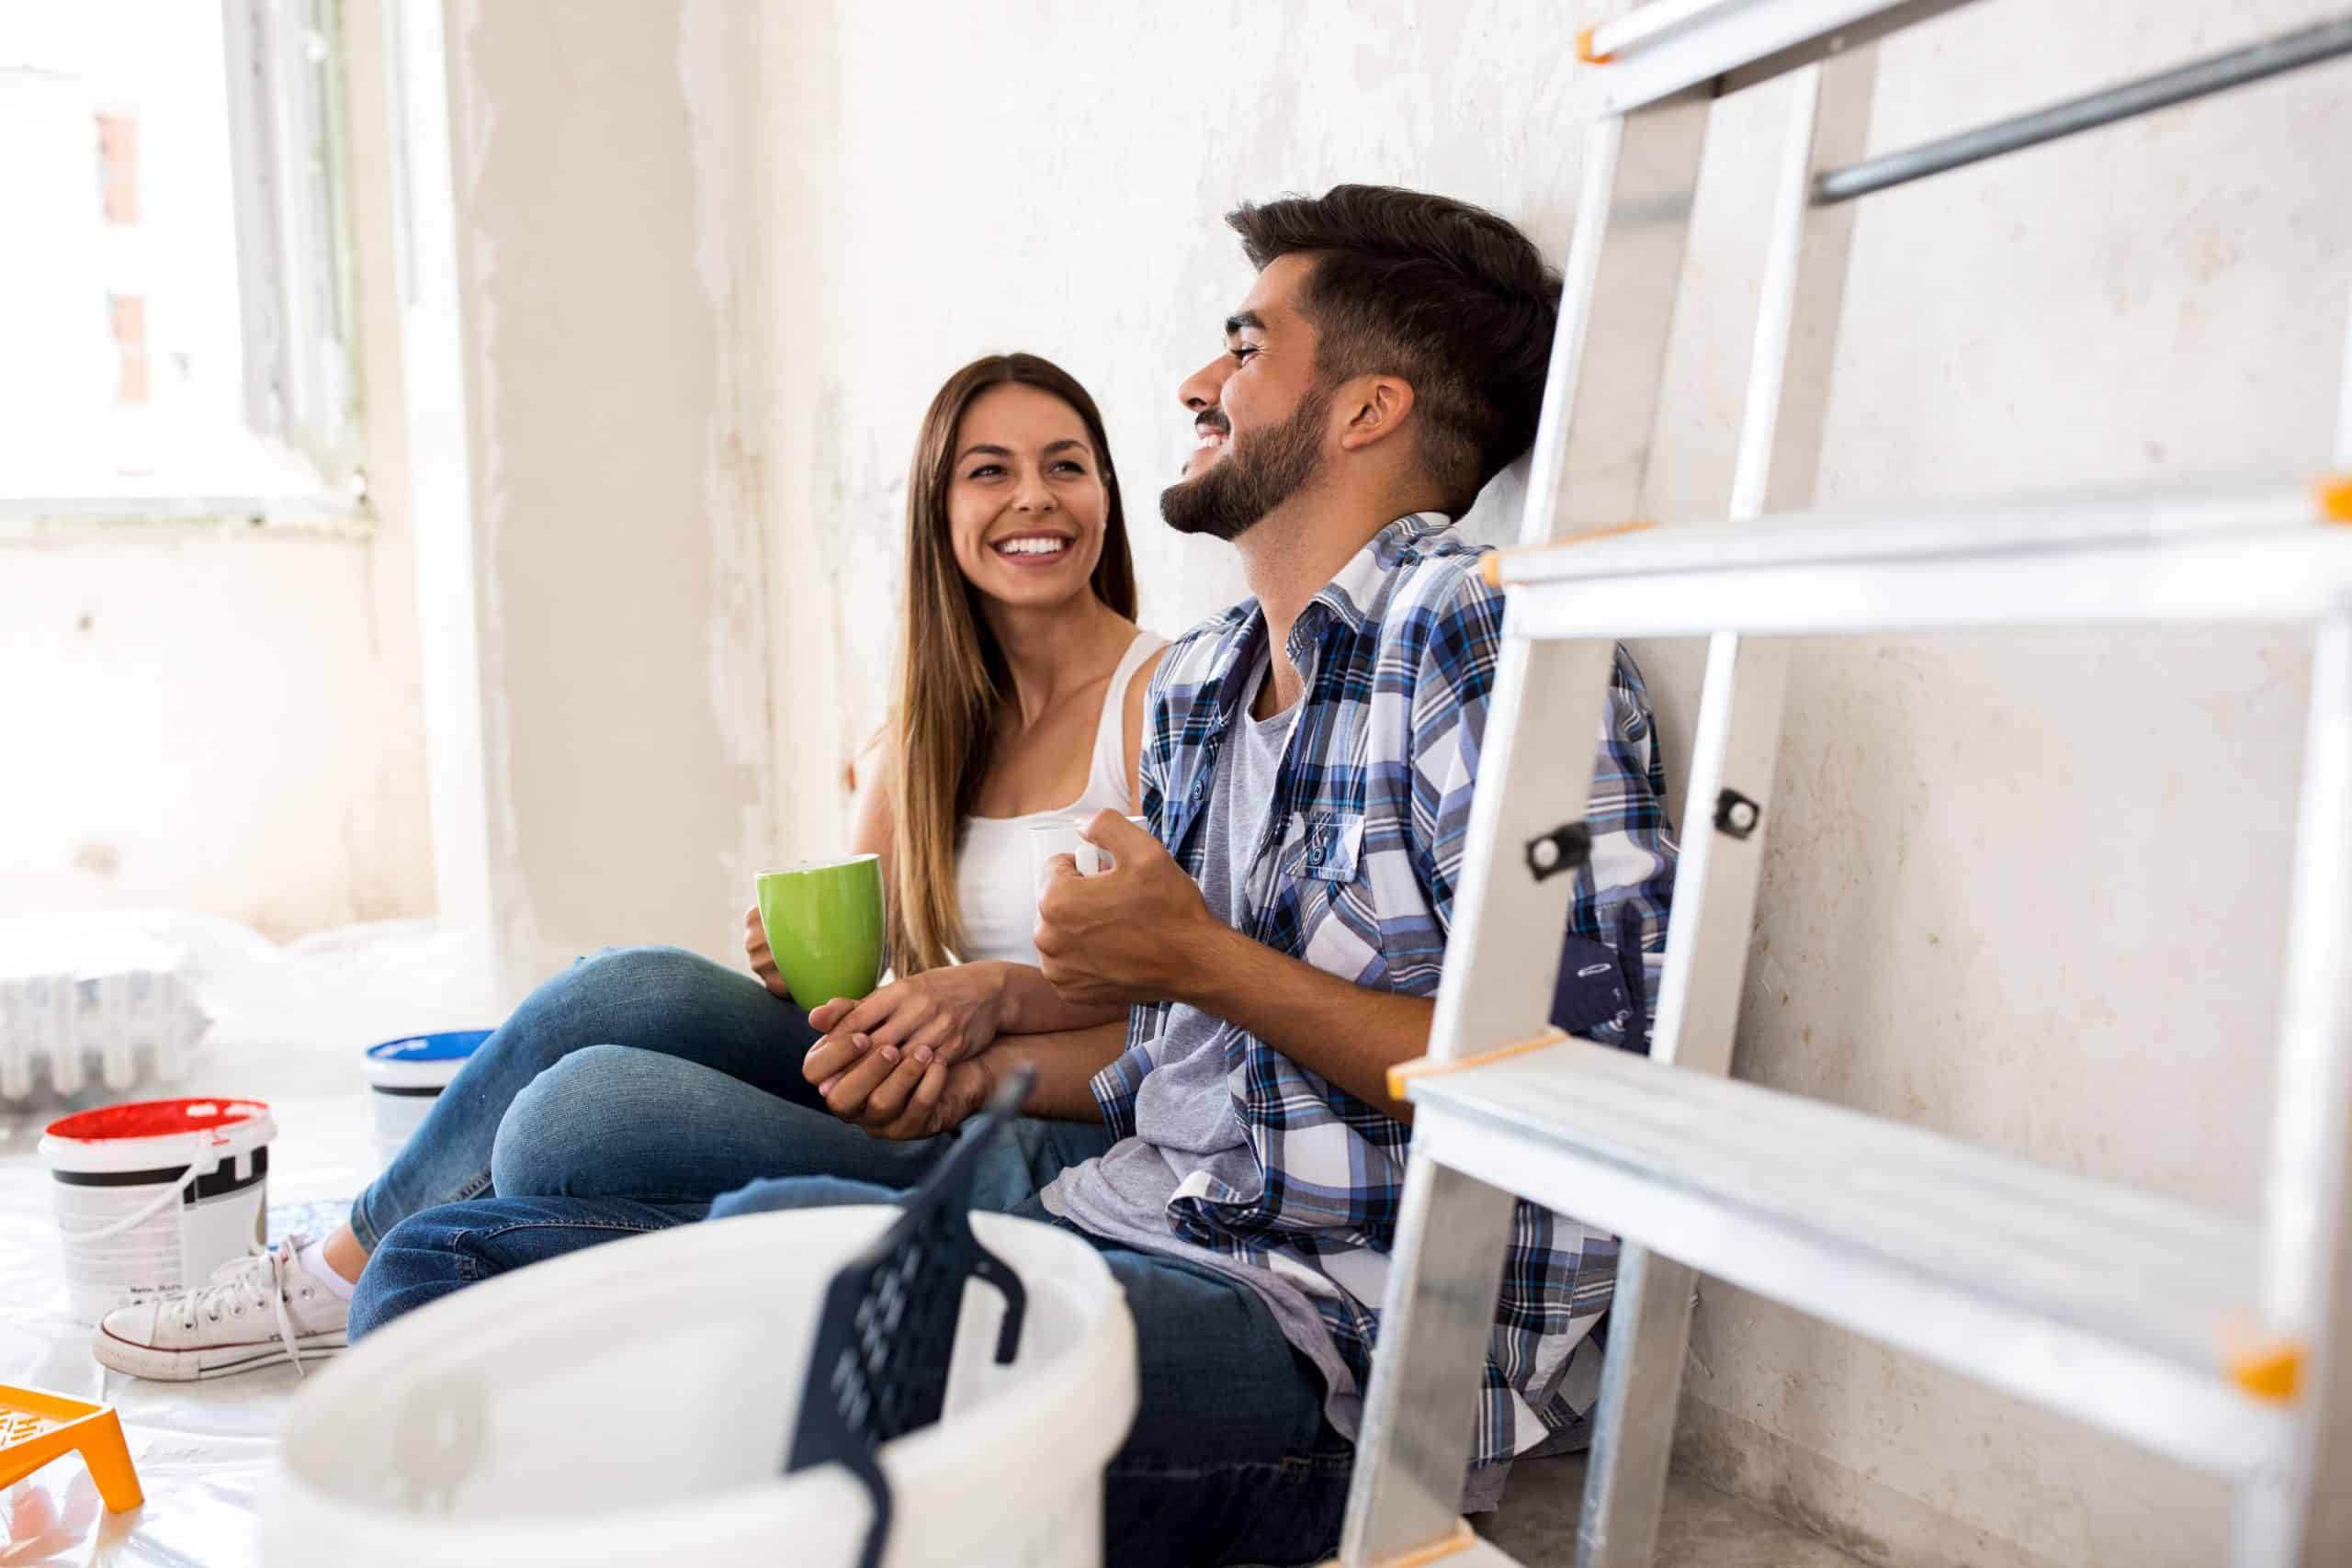 7 Biggest Home Renovation Mistakes to Avoid